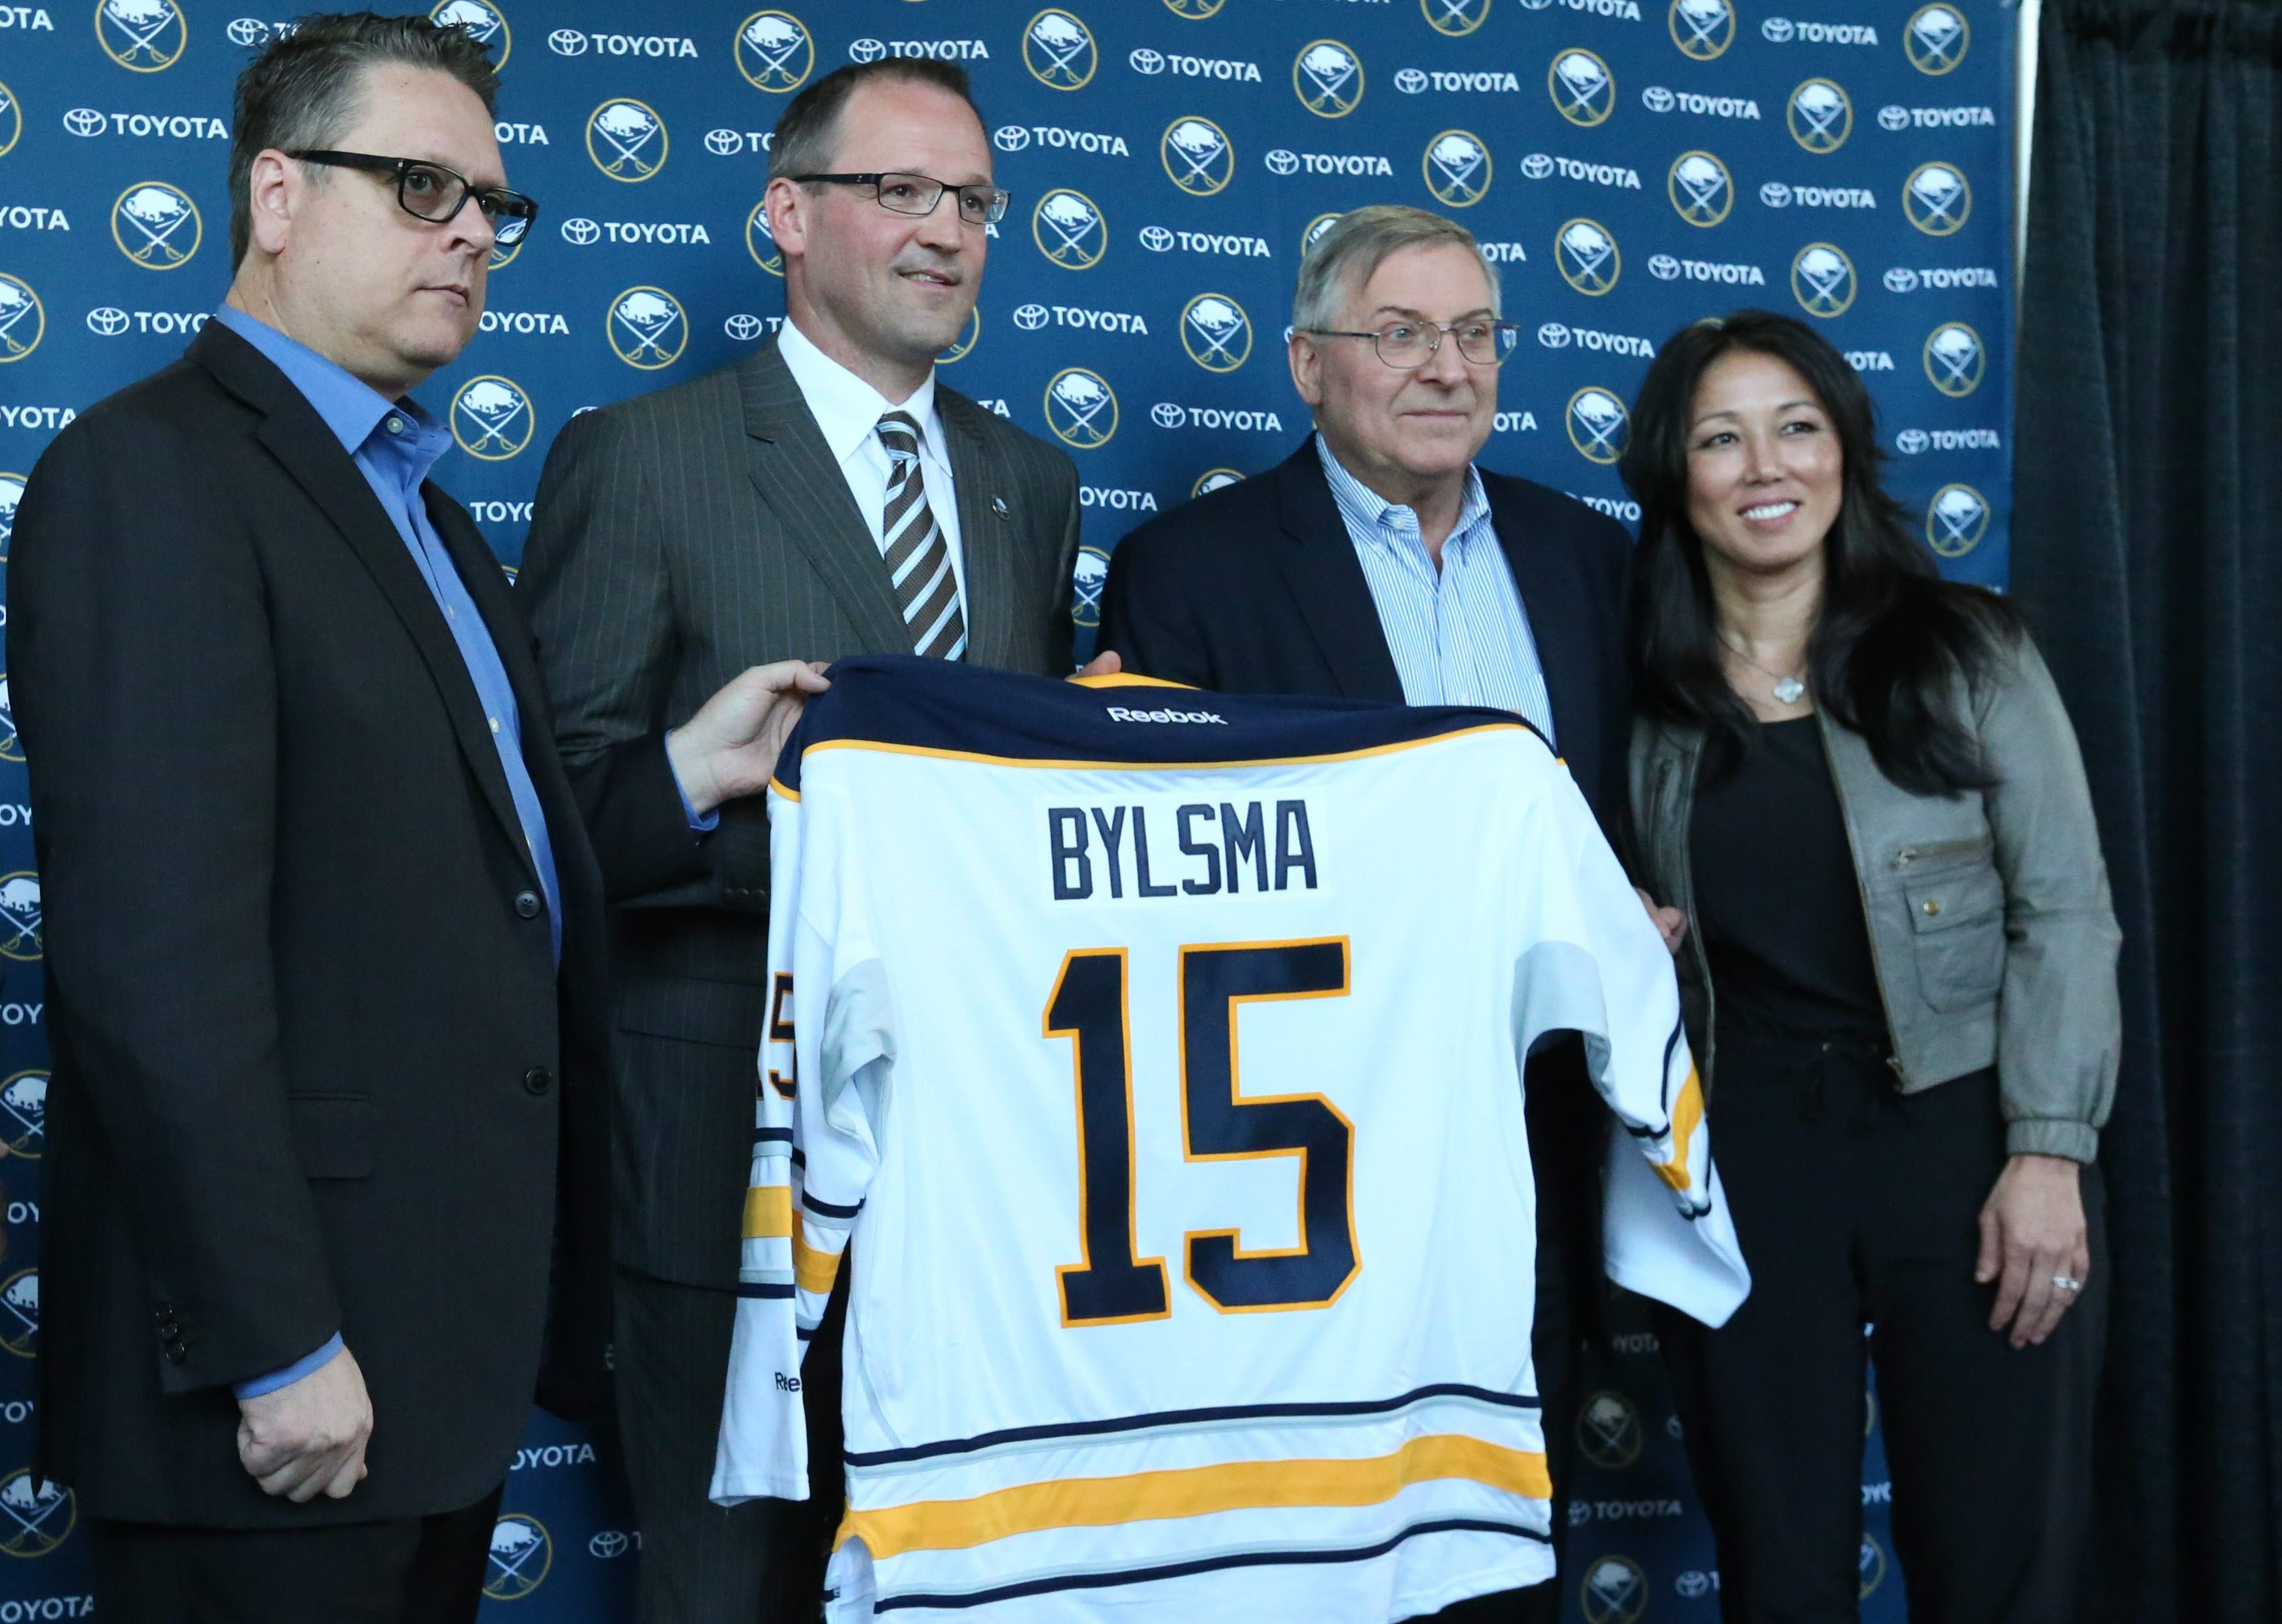 In happier times: Dan Bylsma gets his Sabres jersey from now ex-GM Tim Murray and owners Terry and Kim Pegula in May, 2015. (James P. McCoy/Buffalo News file photo)